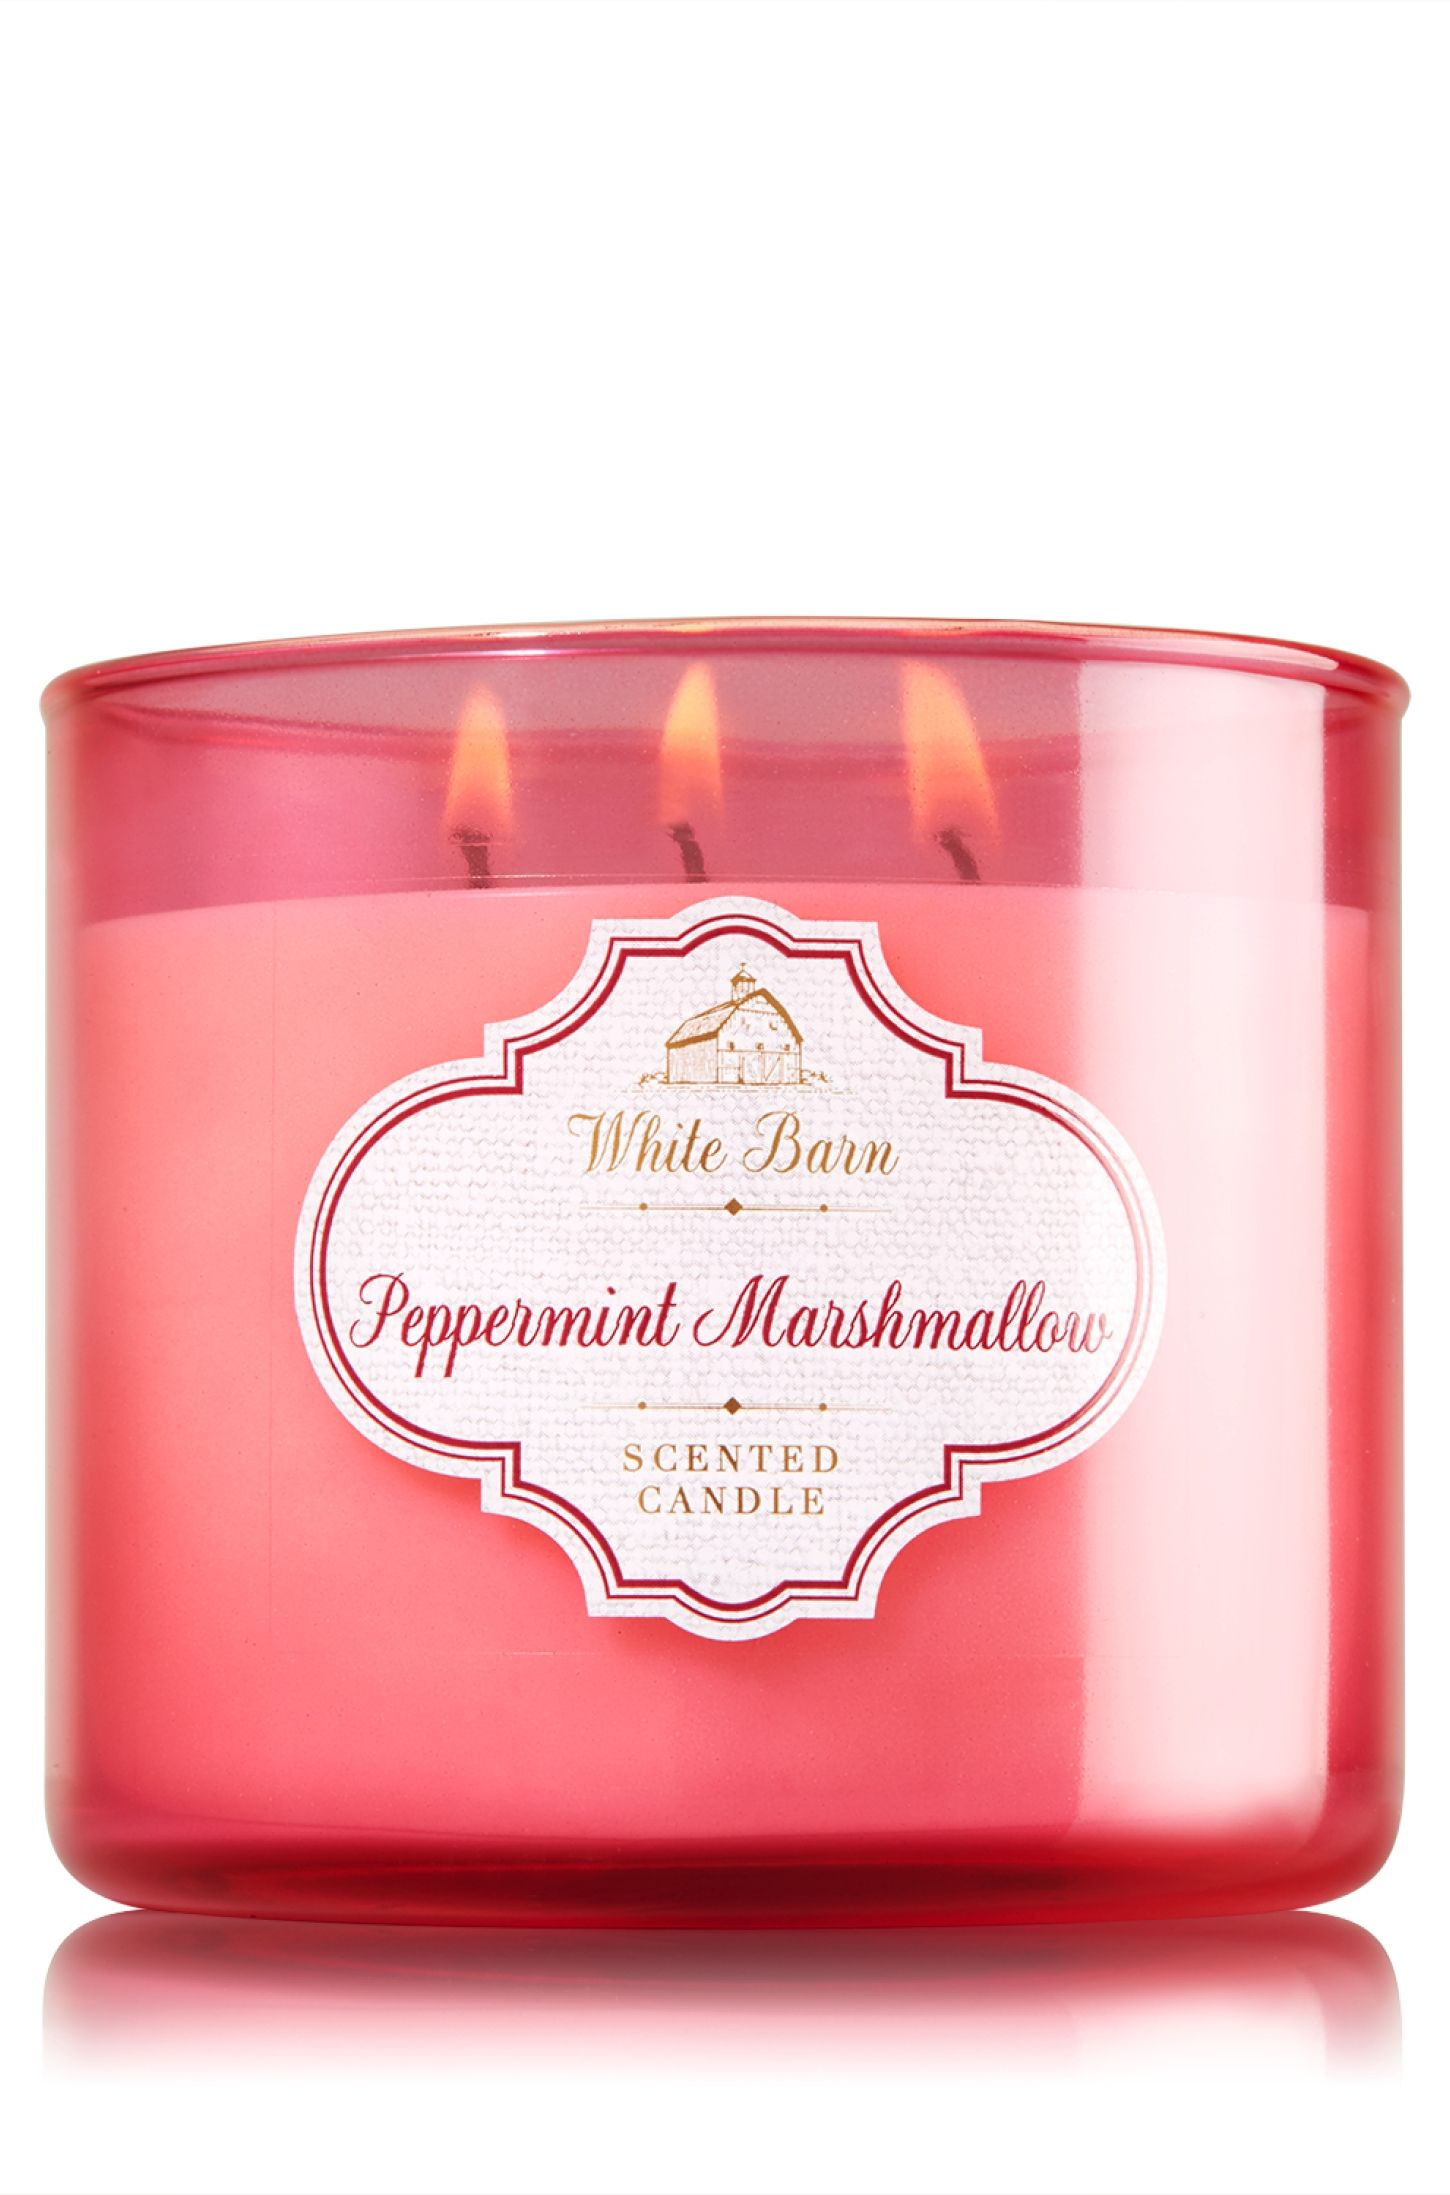 Peppermint Marshmallow 3 Wick Candle  Home Fragrance 1037181  Bath